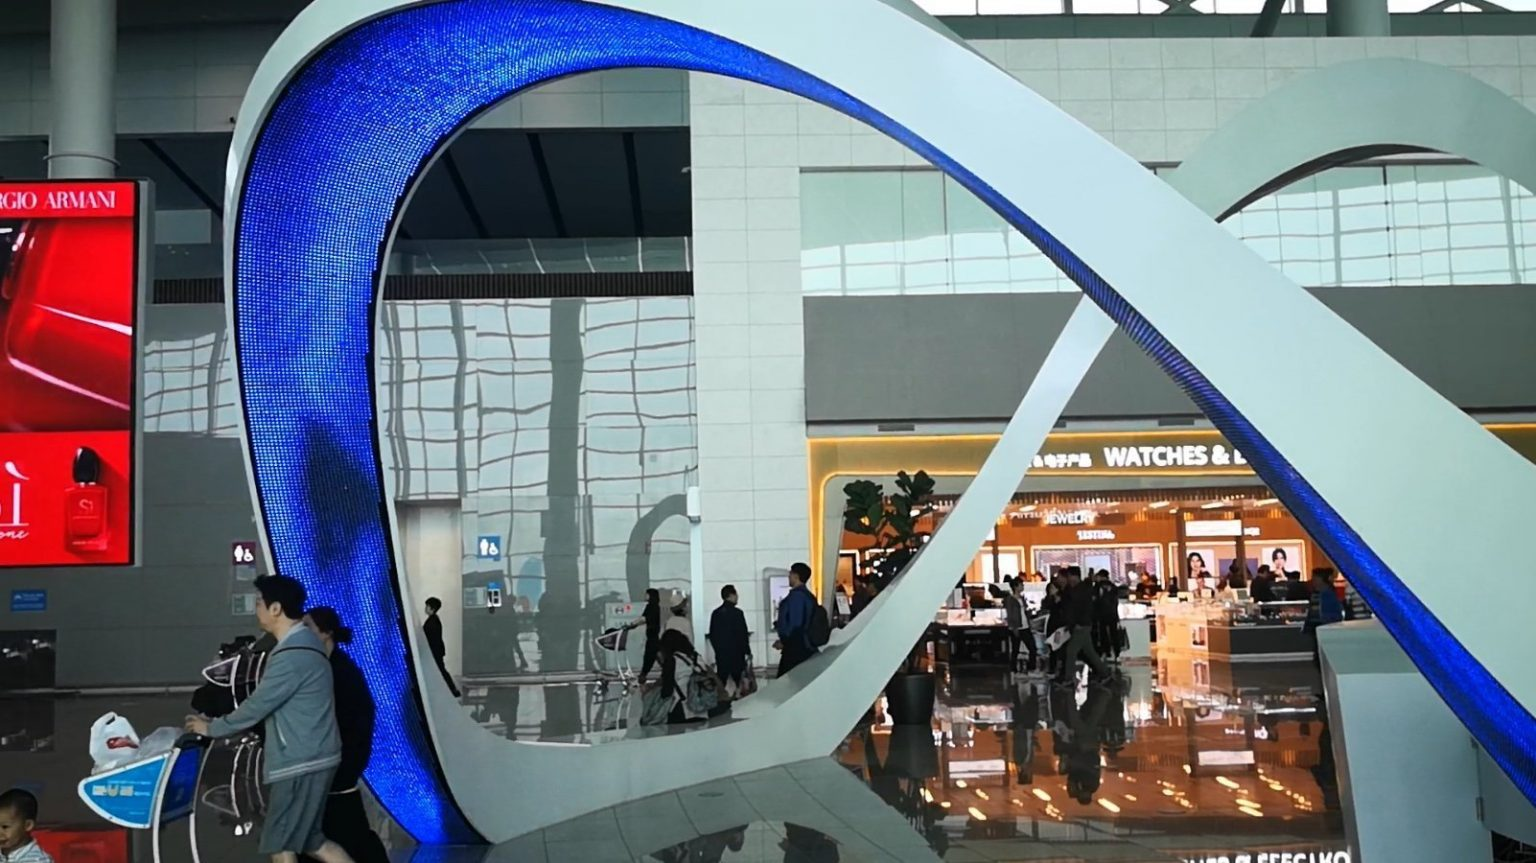 LED arch flexible LED curved screen display